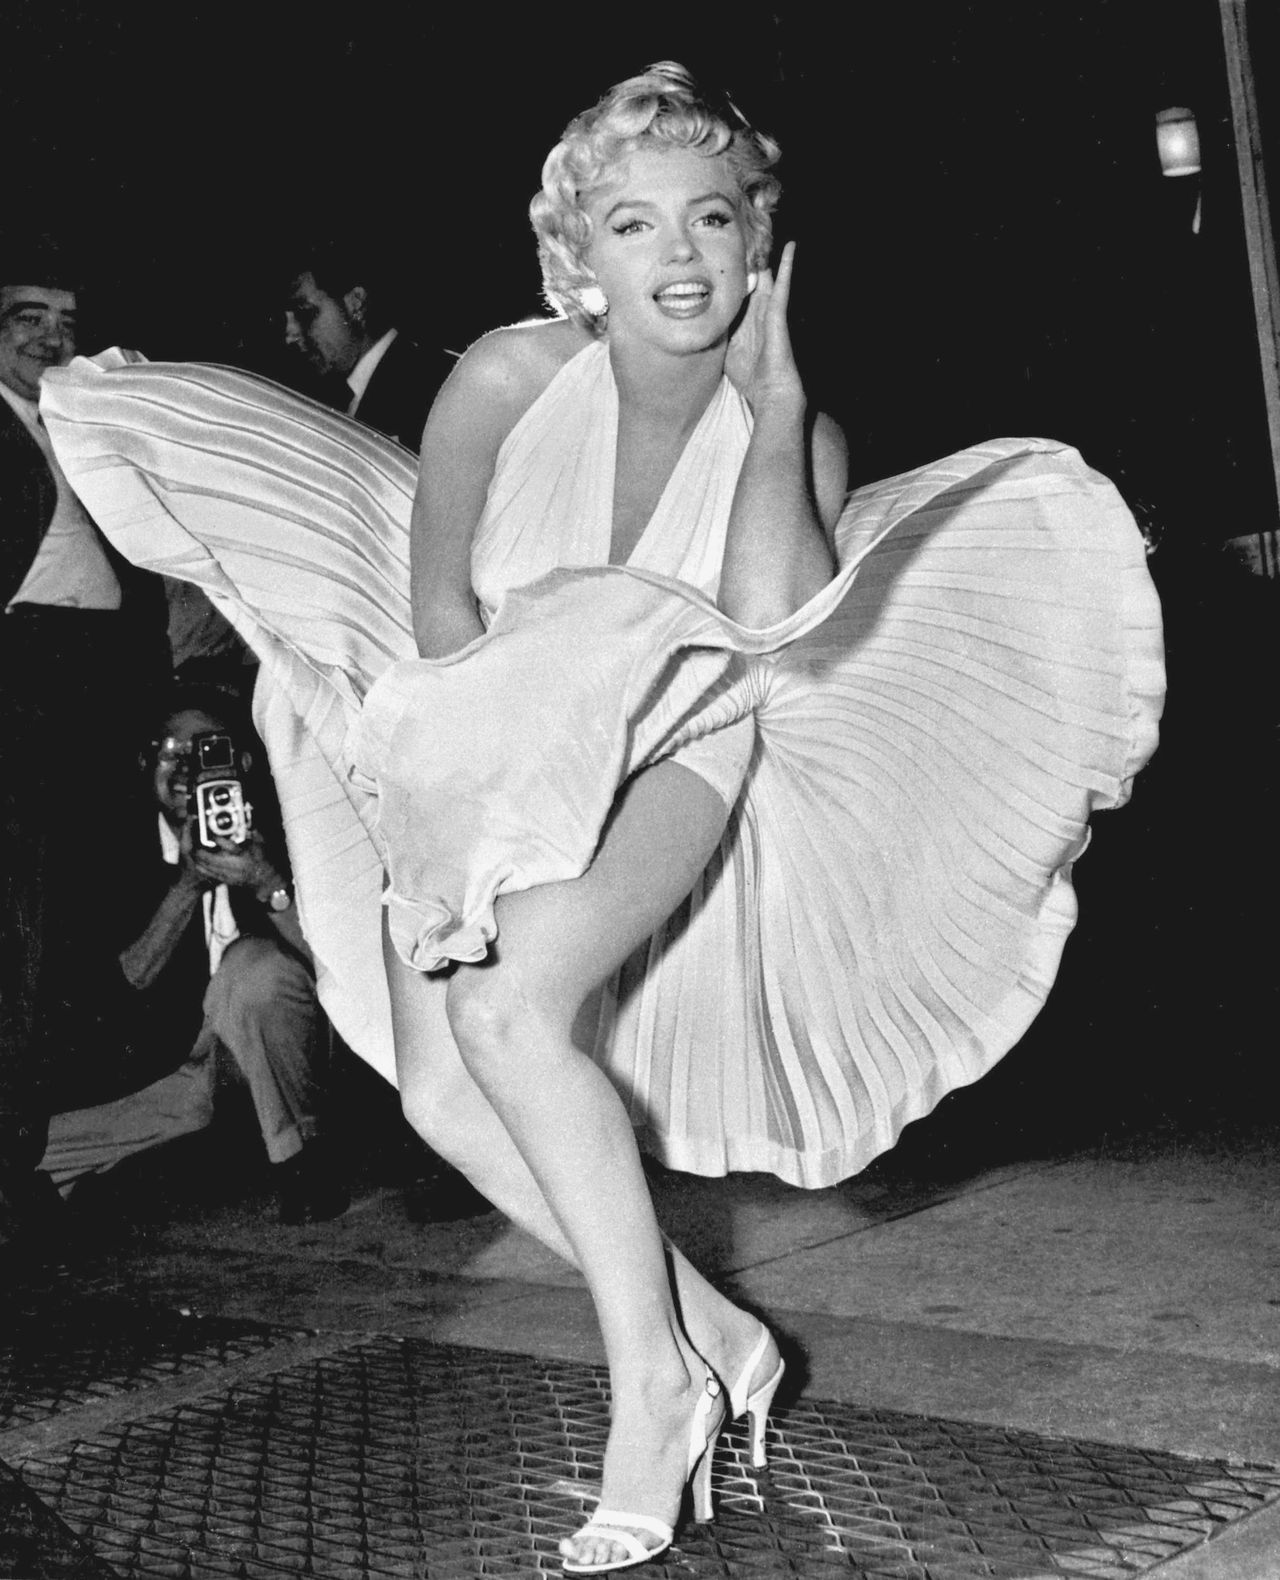 """** FILE ** In this Sept. 9, 1954 file photo, Marilyn Monroe poses over the updraft of a New York subway grating while in character for the filming of """"The Seven Year Itch"""" in New York. Julien's Auctions Hollywood Memorabilia is auctioning off Marilyn Monroe memorabilia, including personal photos, bank statements, scripts, signed checks, and the chair used in the star's final photo shoot, on Saturday, June 26, 2010, and Sunday June 27 at Planet Hollywood Resort and Casino in Las Vegas.(AP Photo/Matty Zimmerman, file)"""